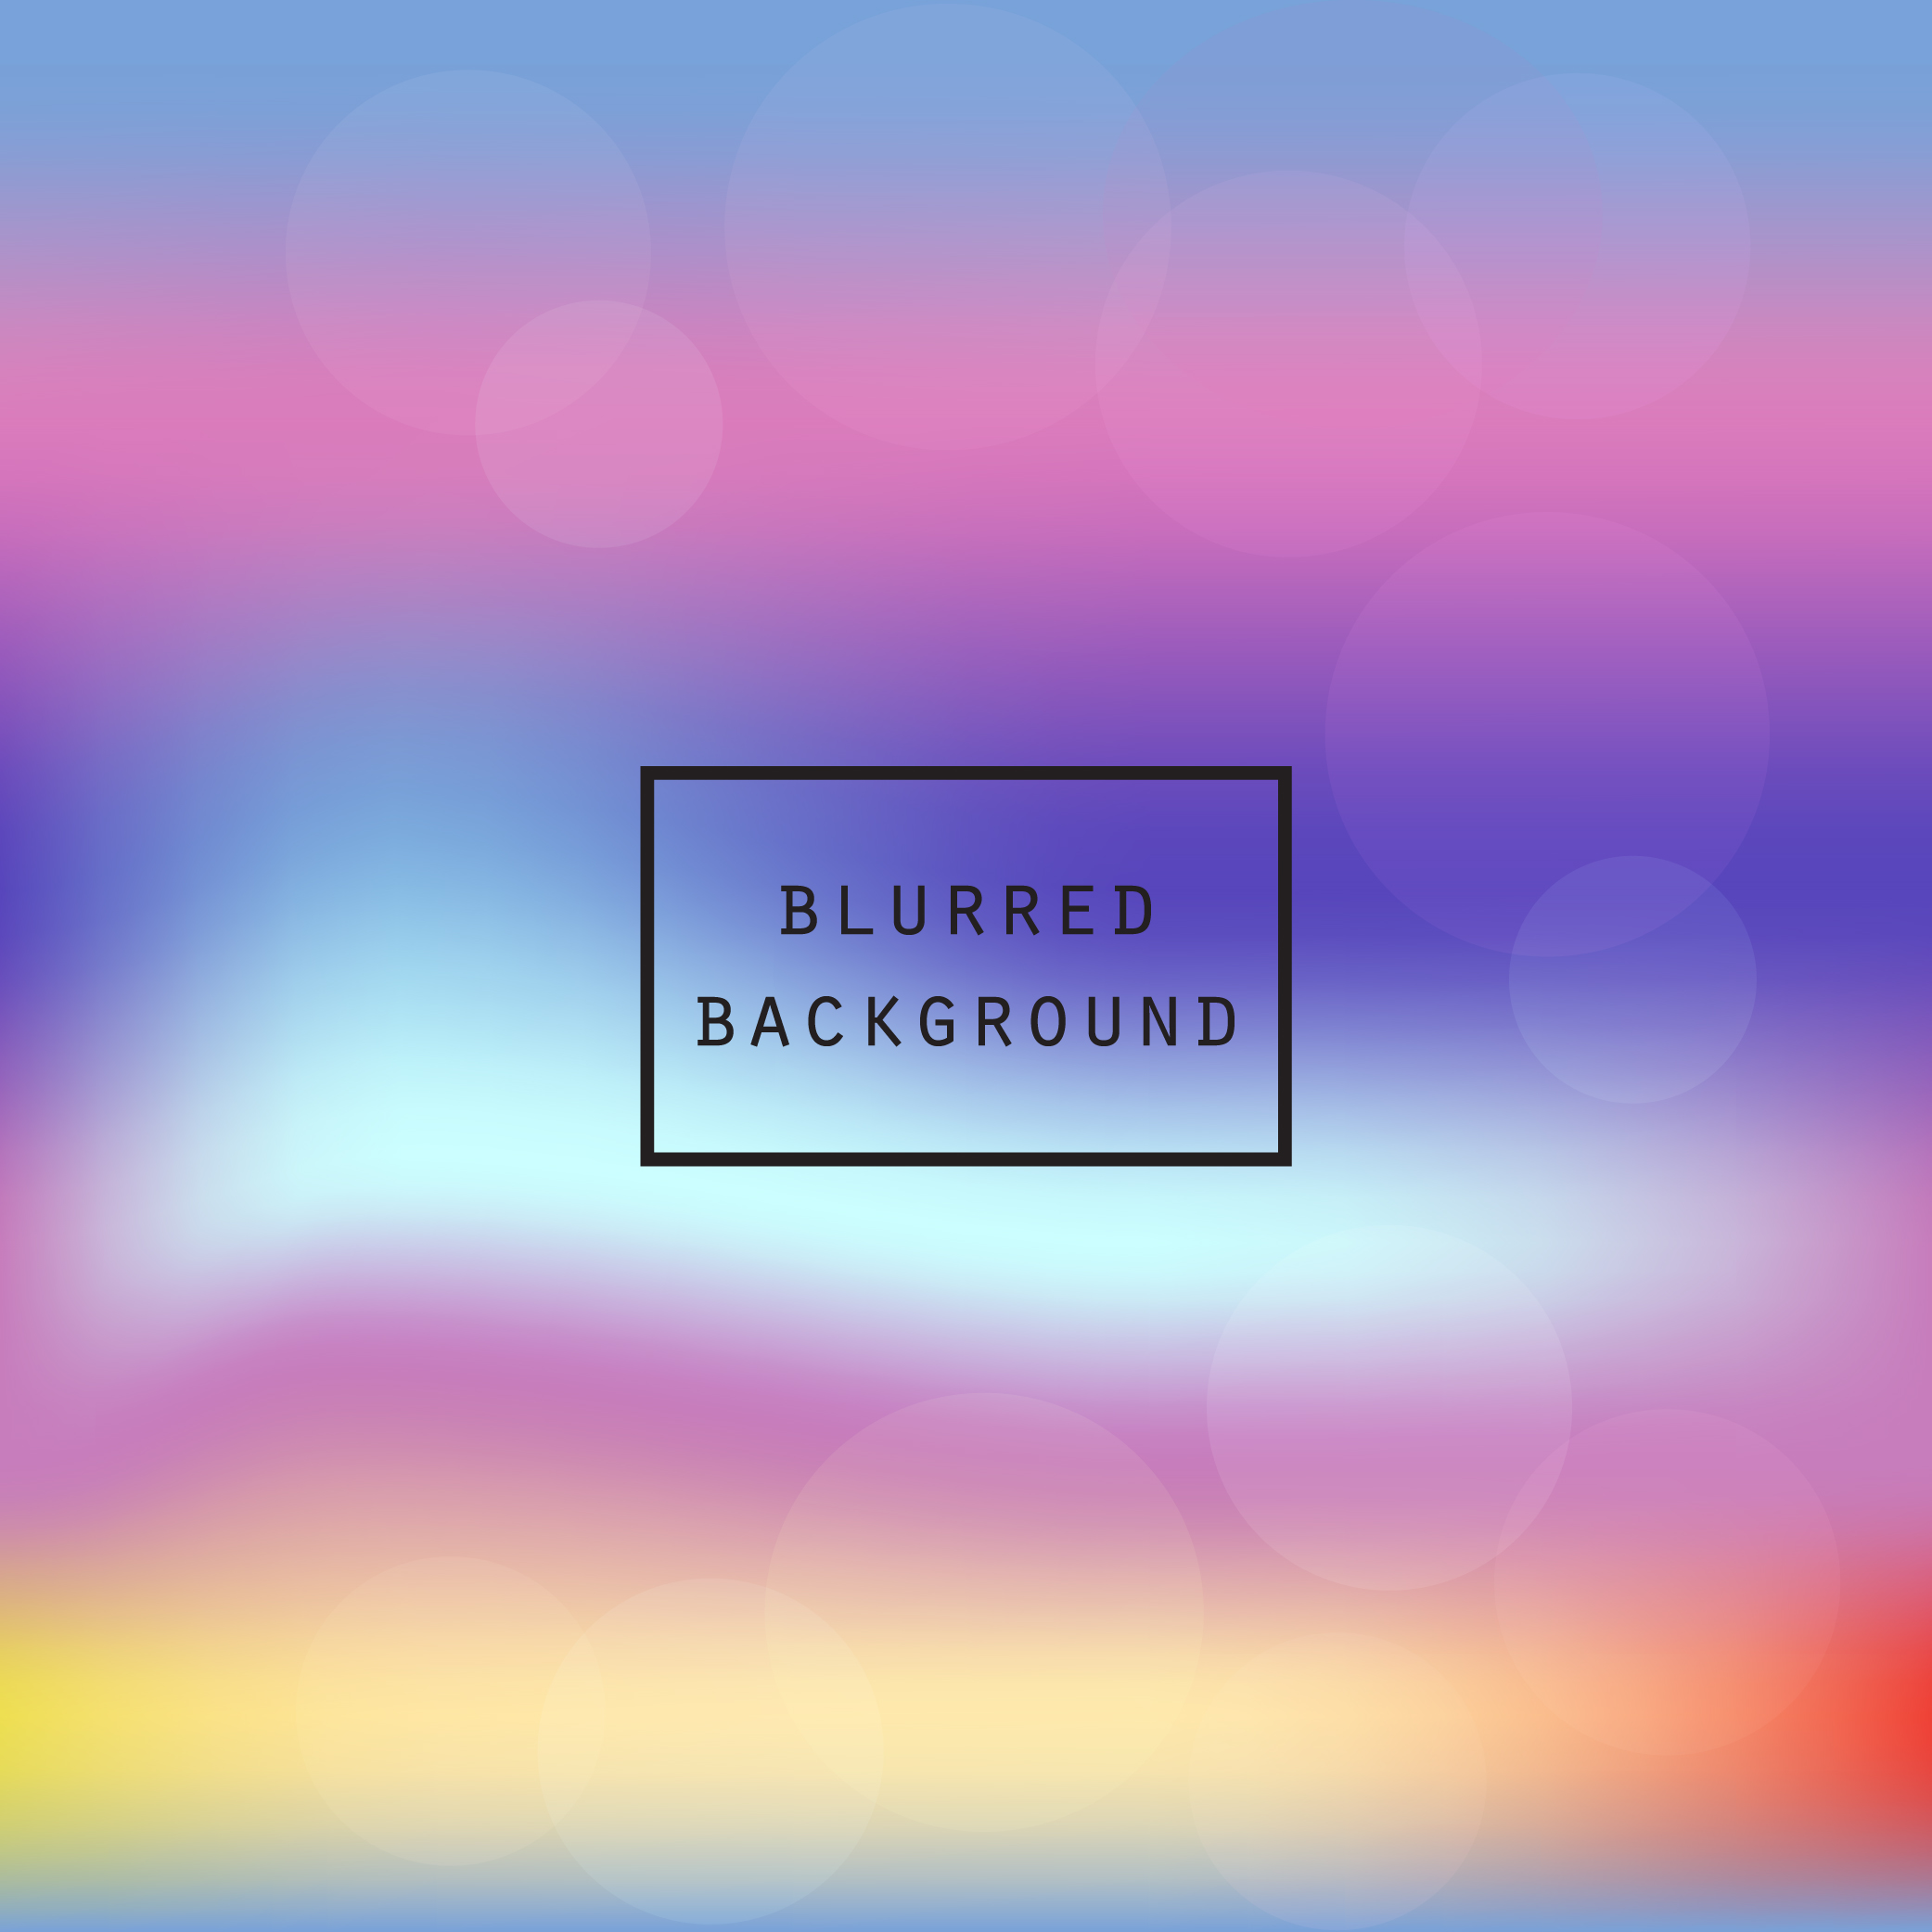 Colorful bright smooth gradient background wallpaper example image 2